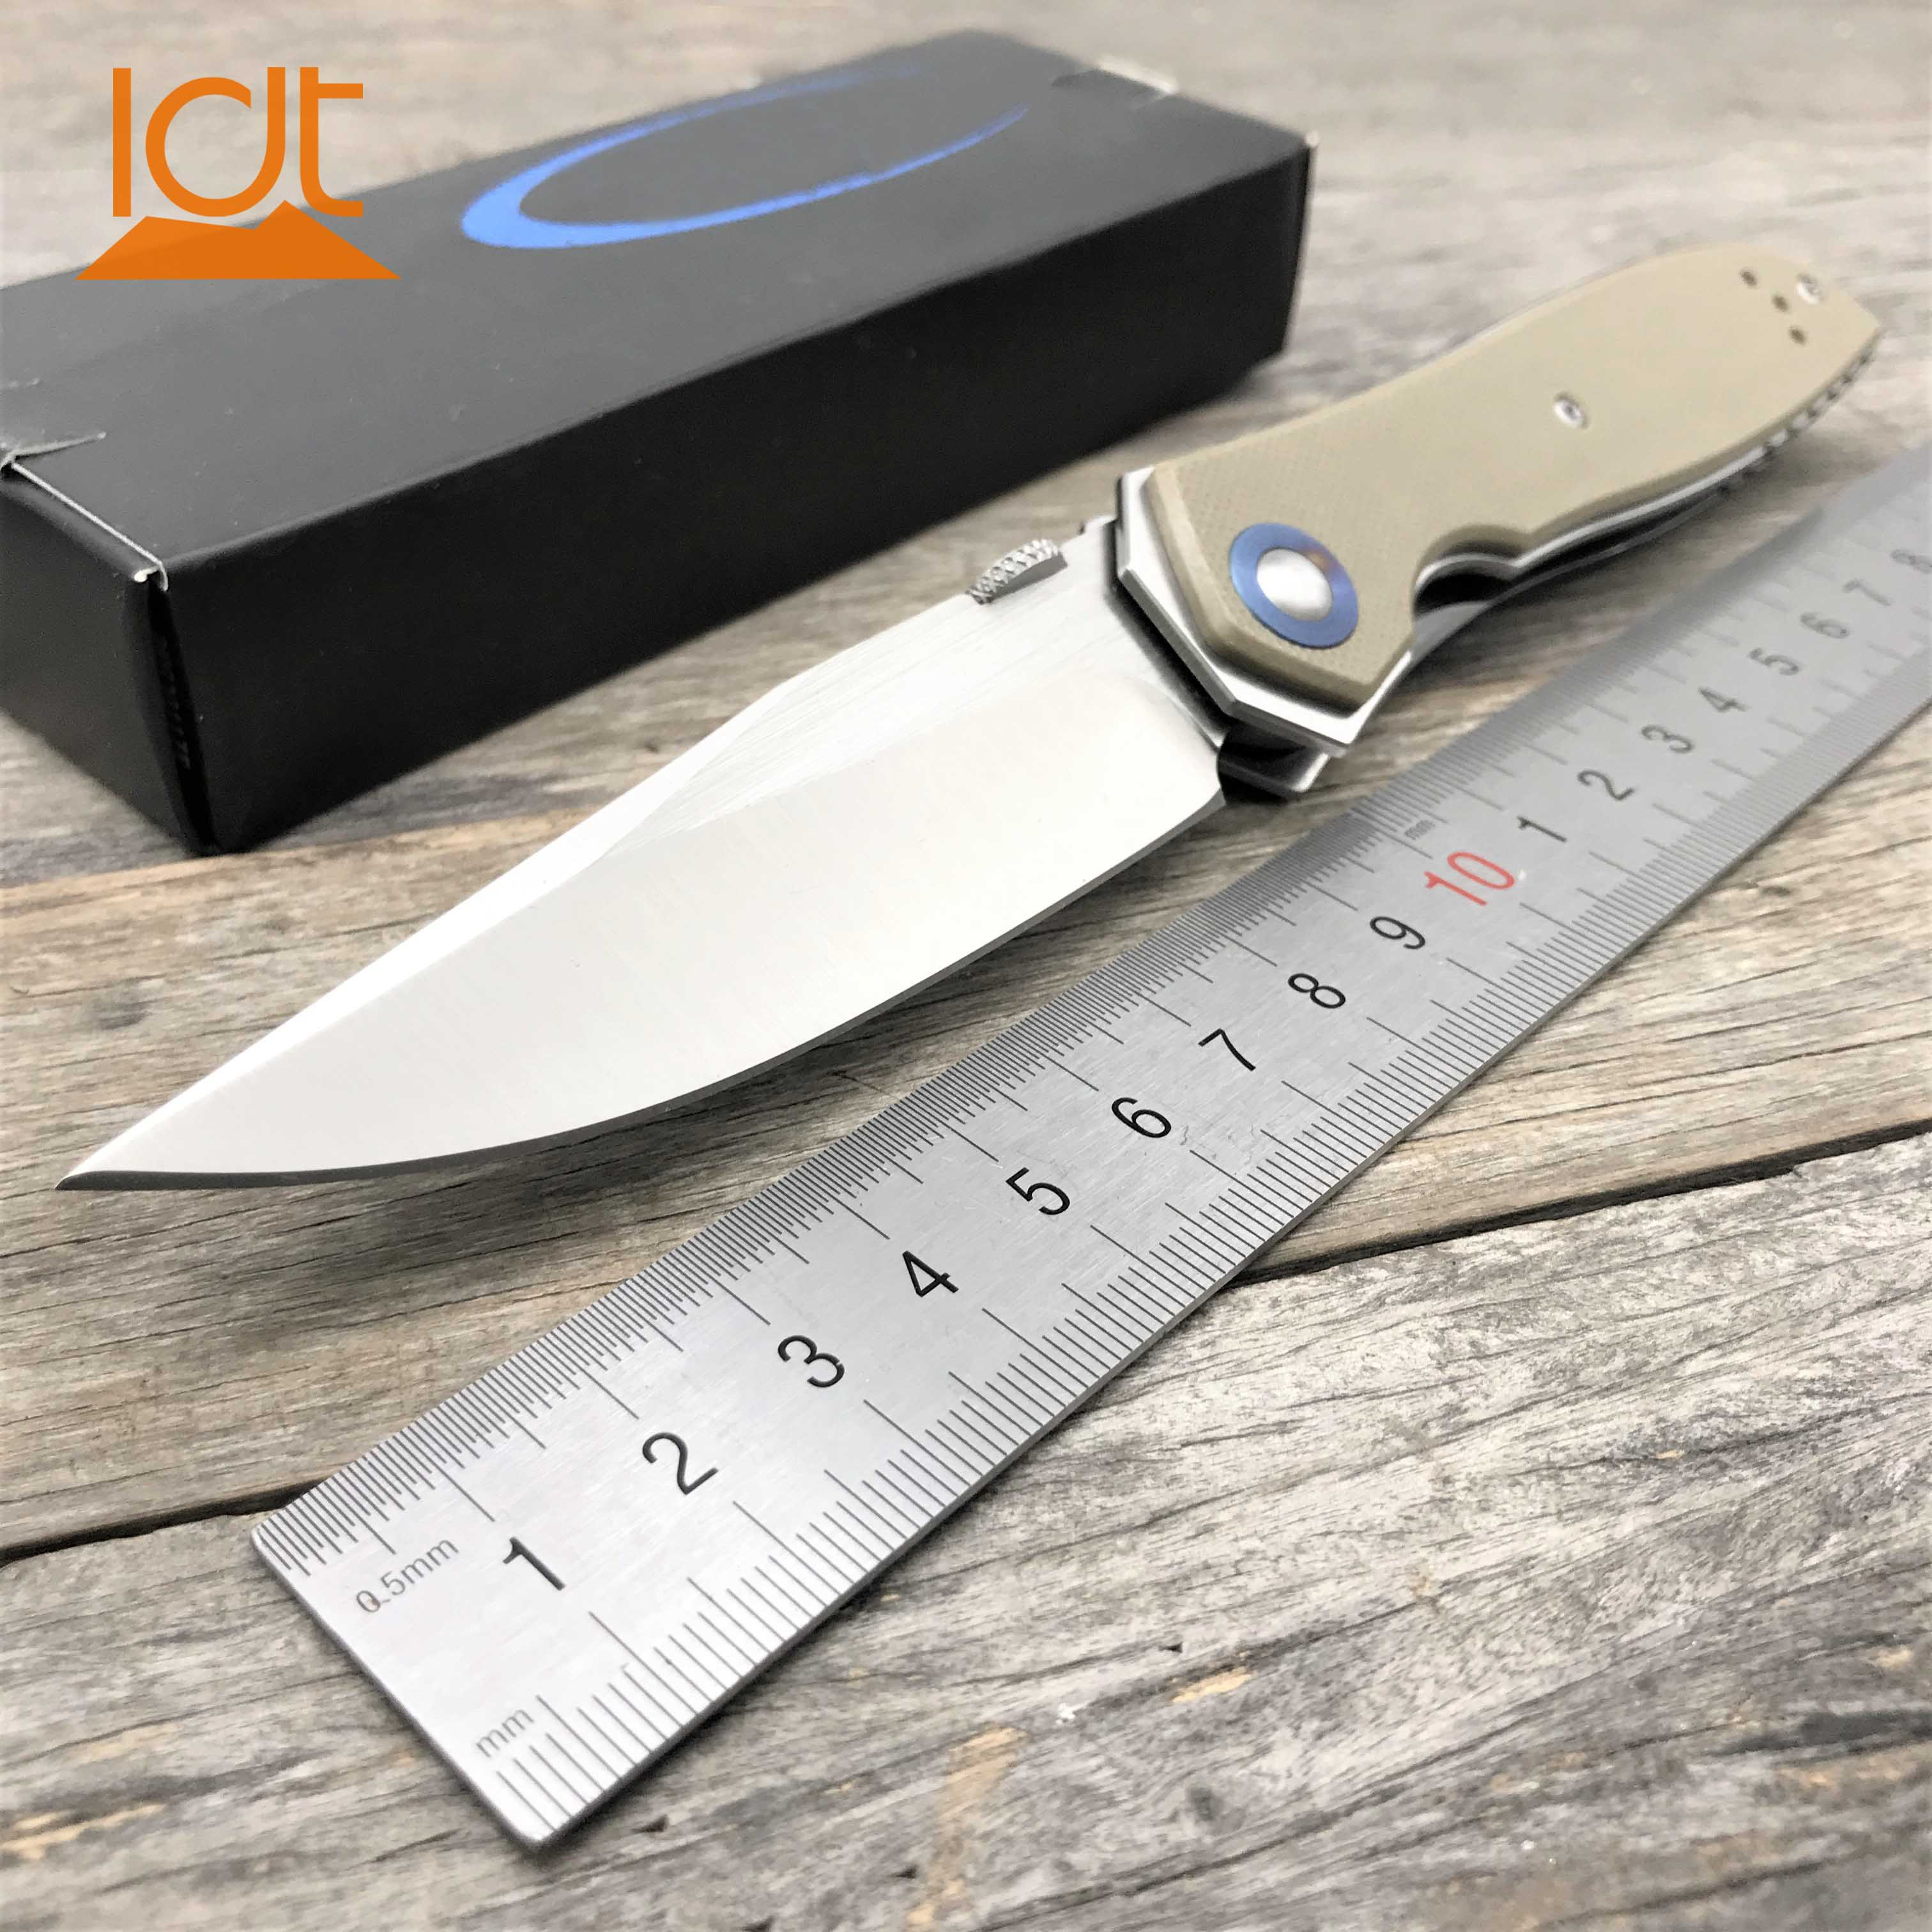 LDT 0640 Folding Knife CPM 20CV Blade G10 Handle Hunting Tactical Camping Knives Survival Pocket Outdoor Utility Knife EDC Tools